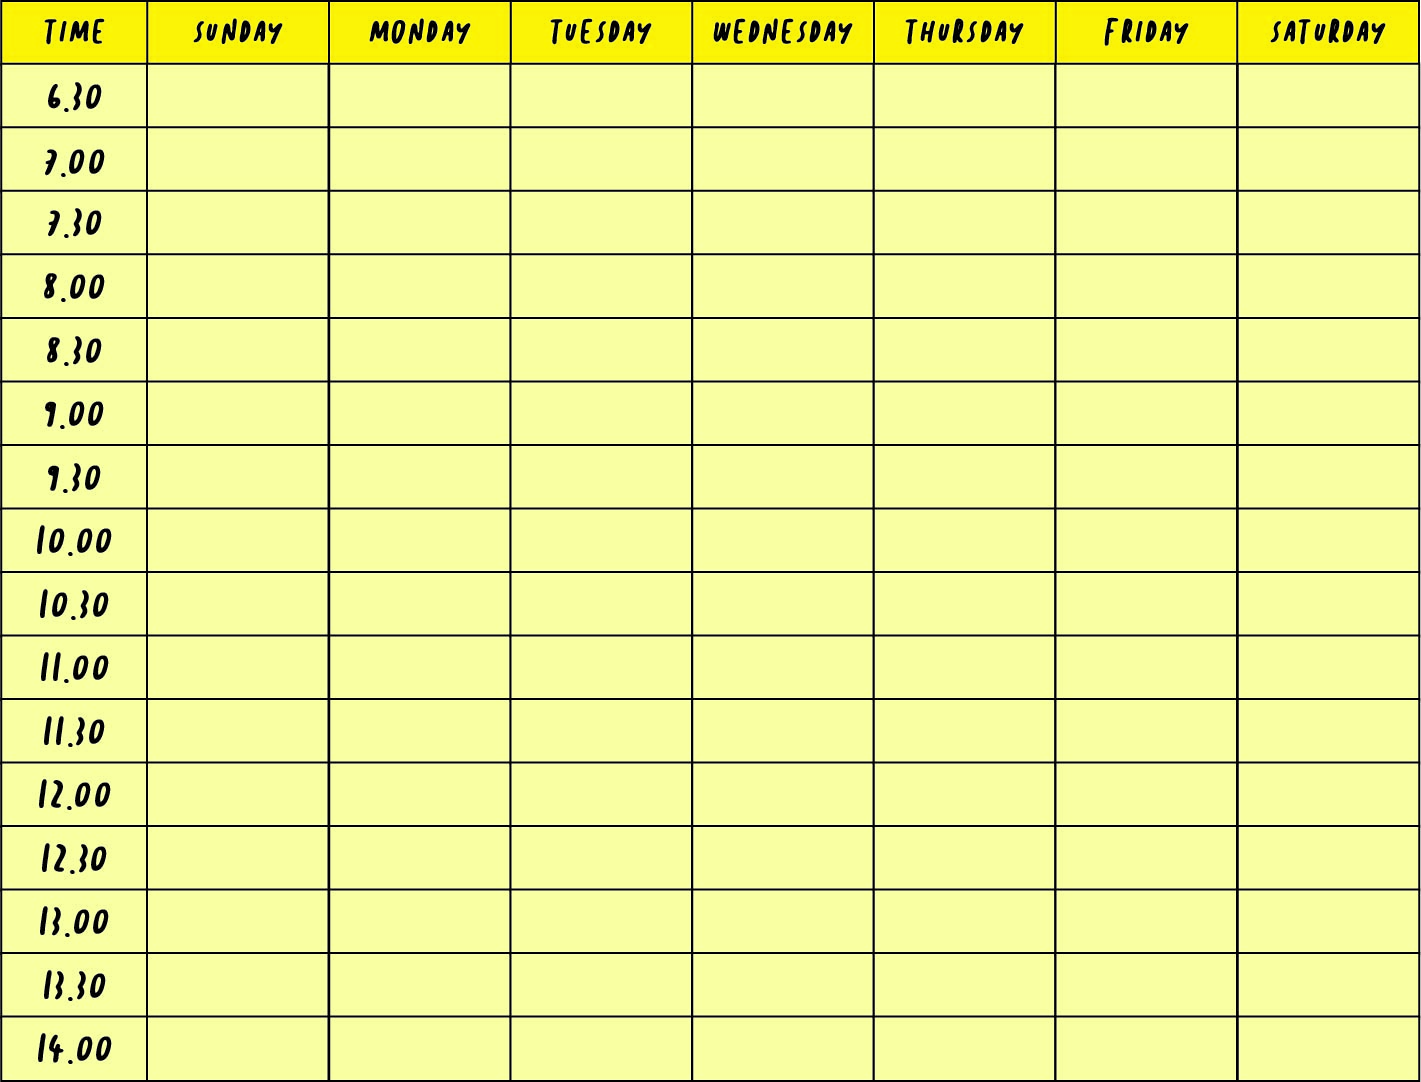 Best Images of Printable Weekly Calendar With Time Slots - Printable ...